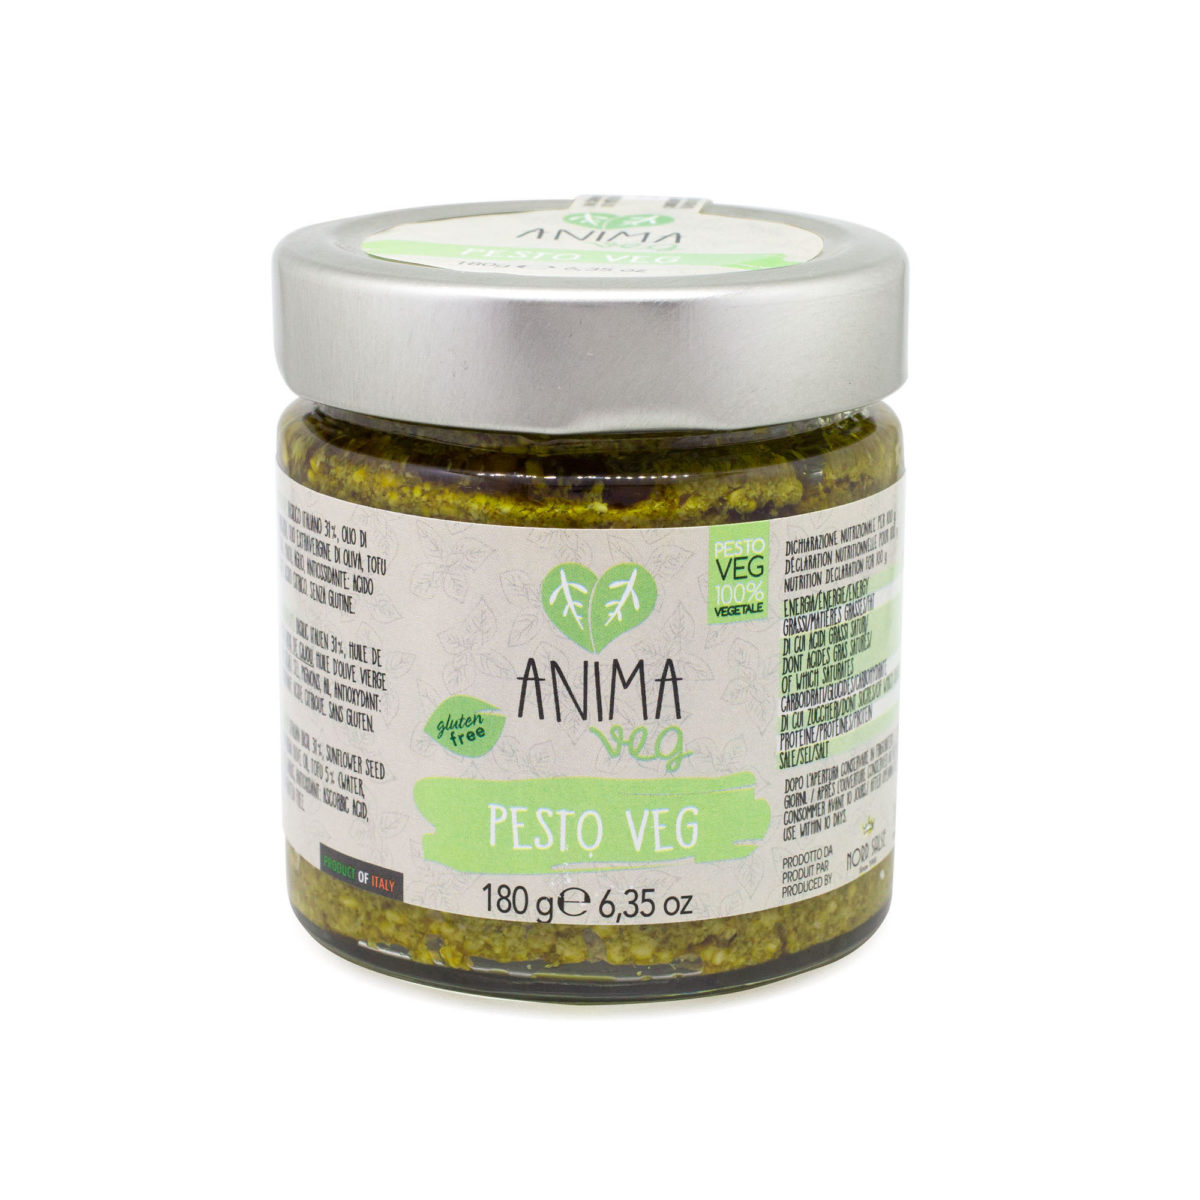 Anima_Veg_Pesto_Vegano_Nord_Salse_180g